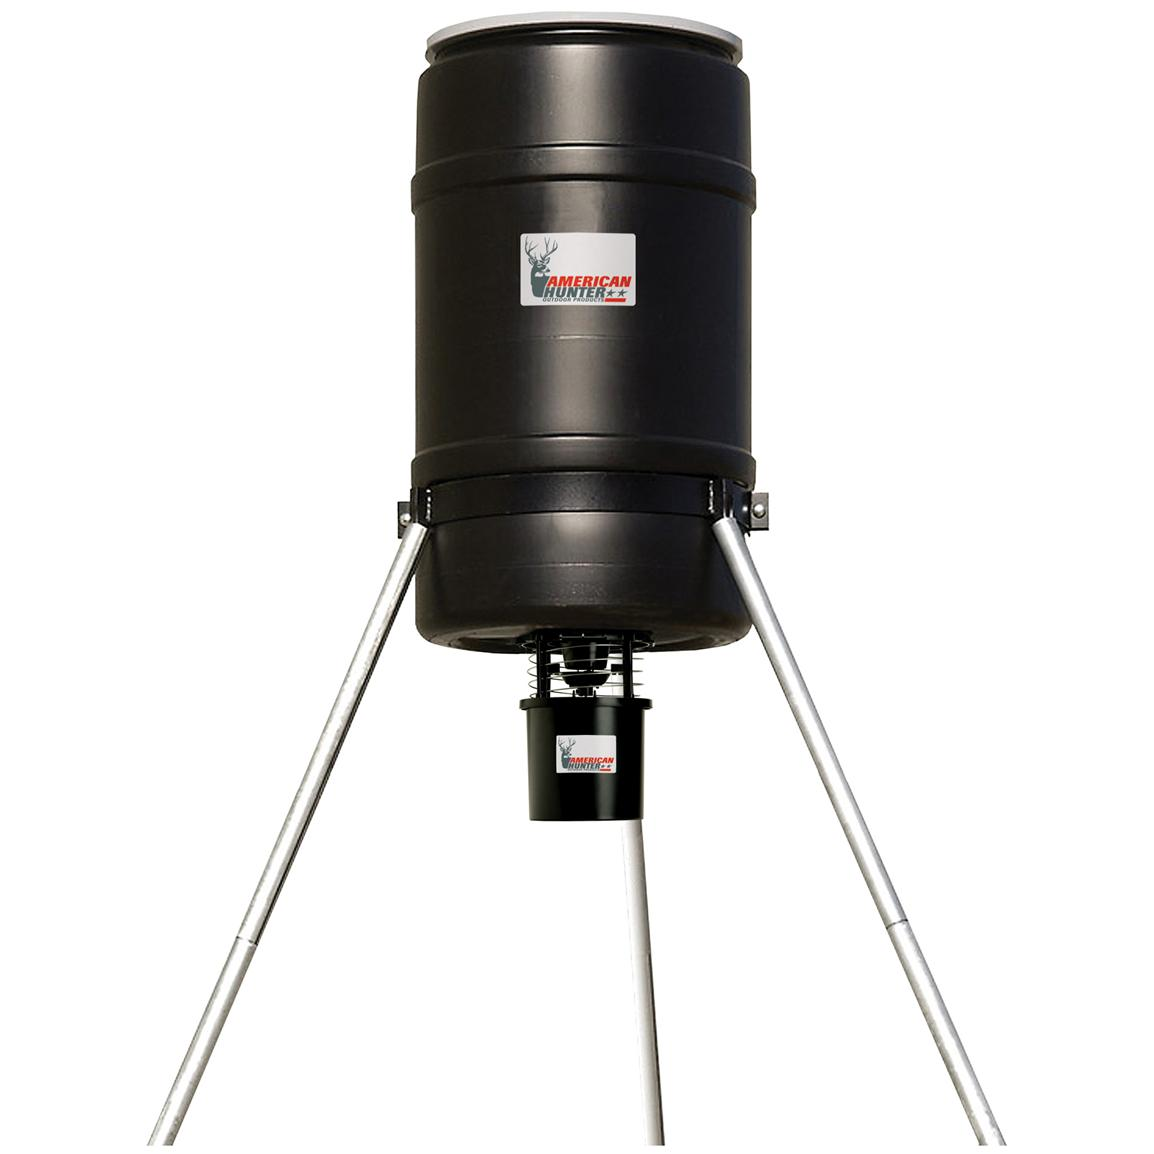 American Hunter 225-lb. Tripod Feeder with RD-Kit Pro and Varmint Buster